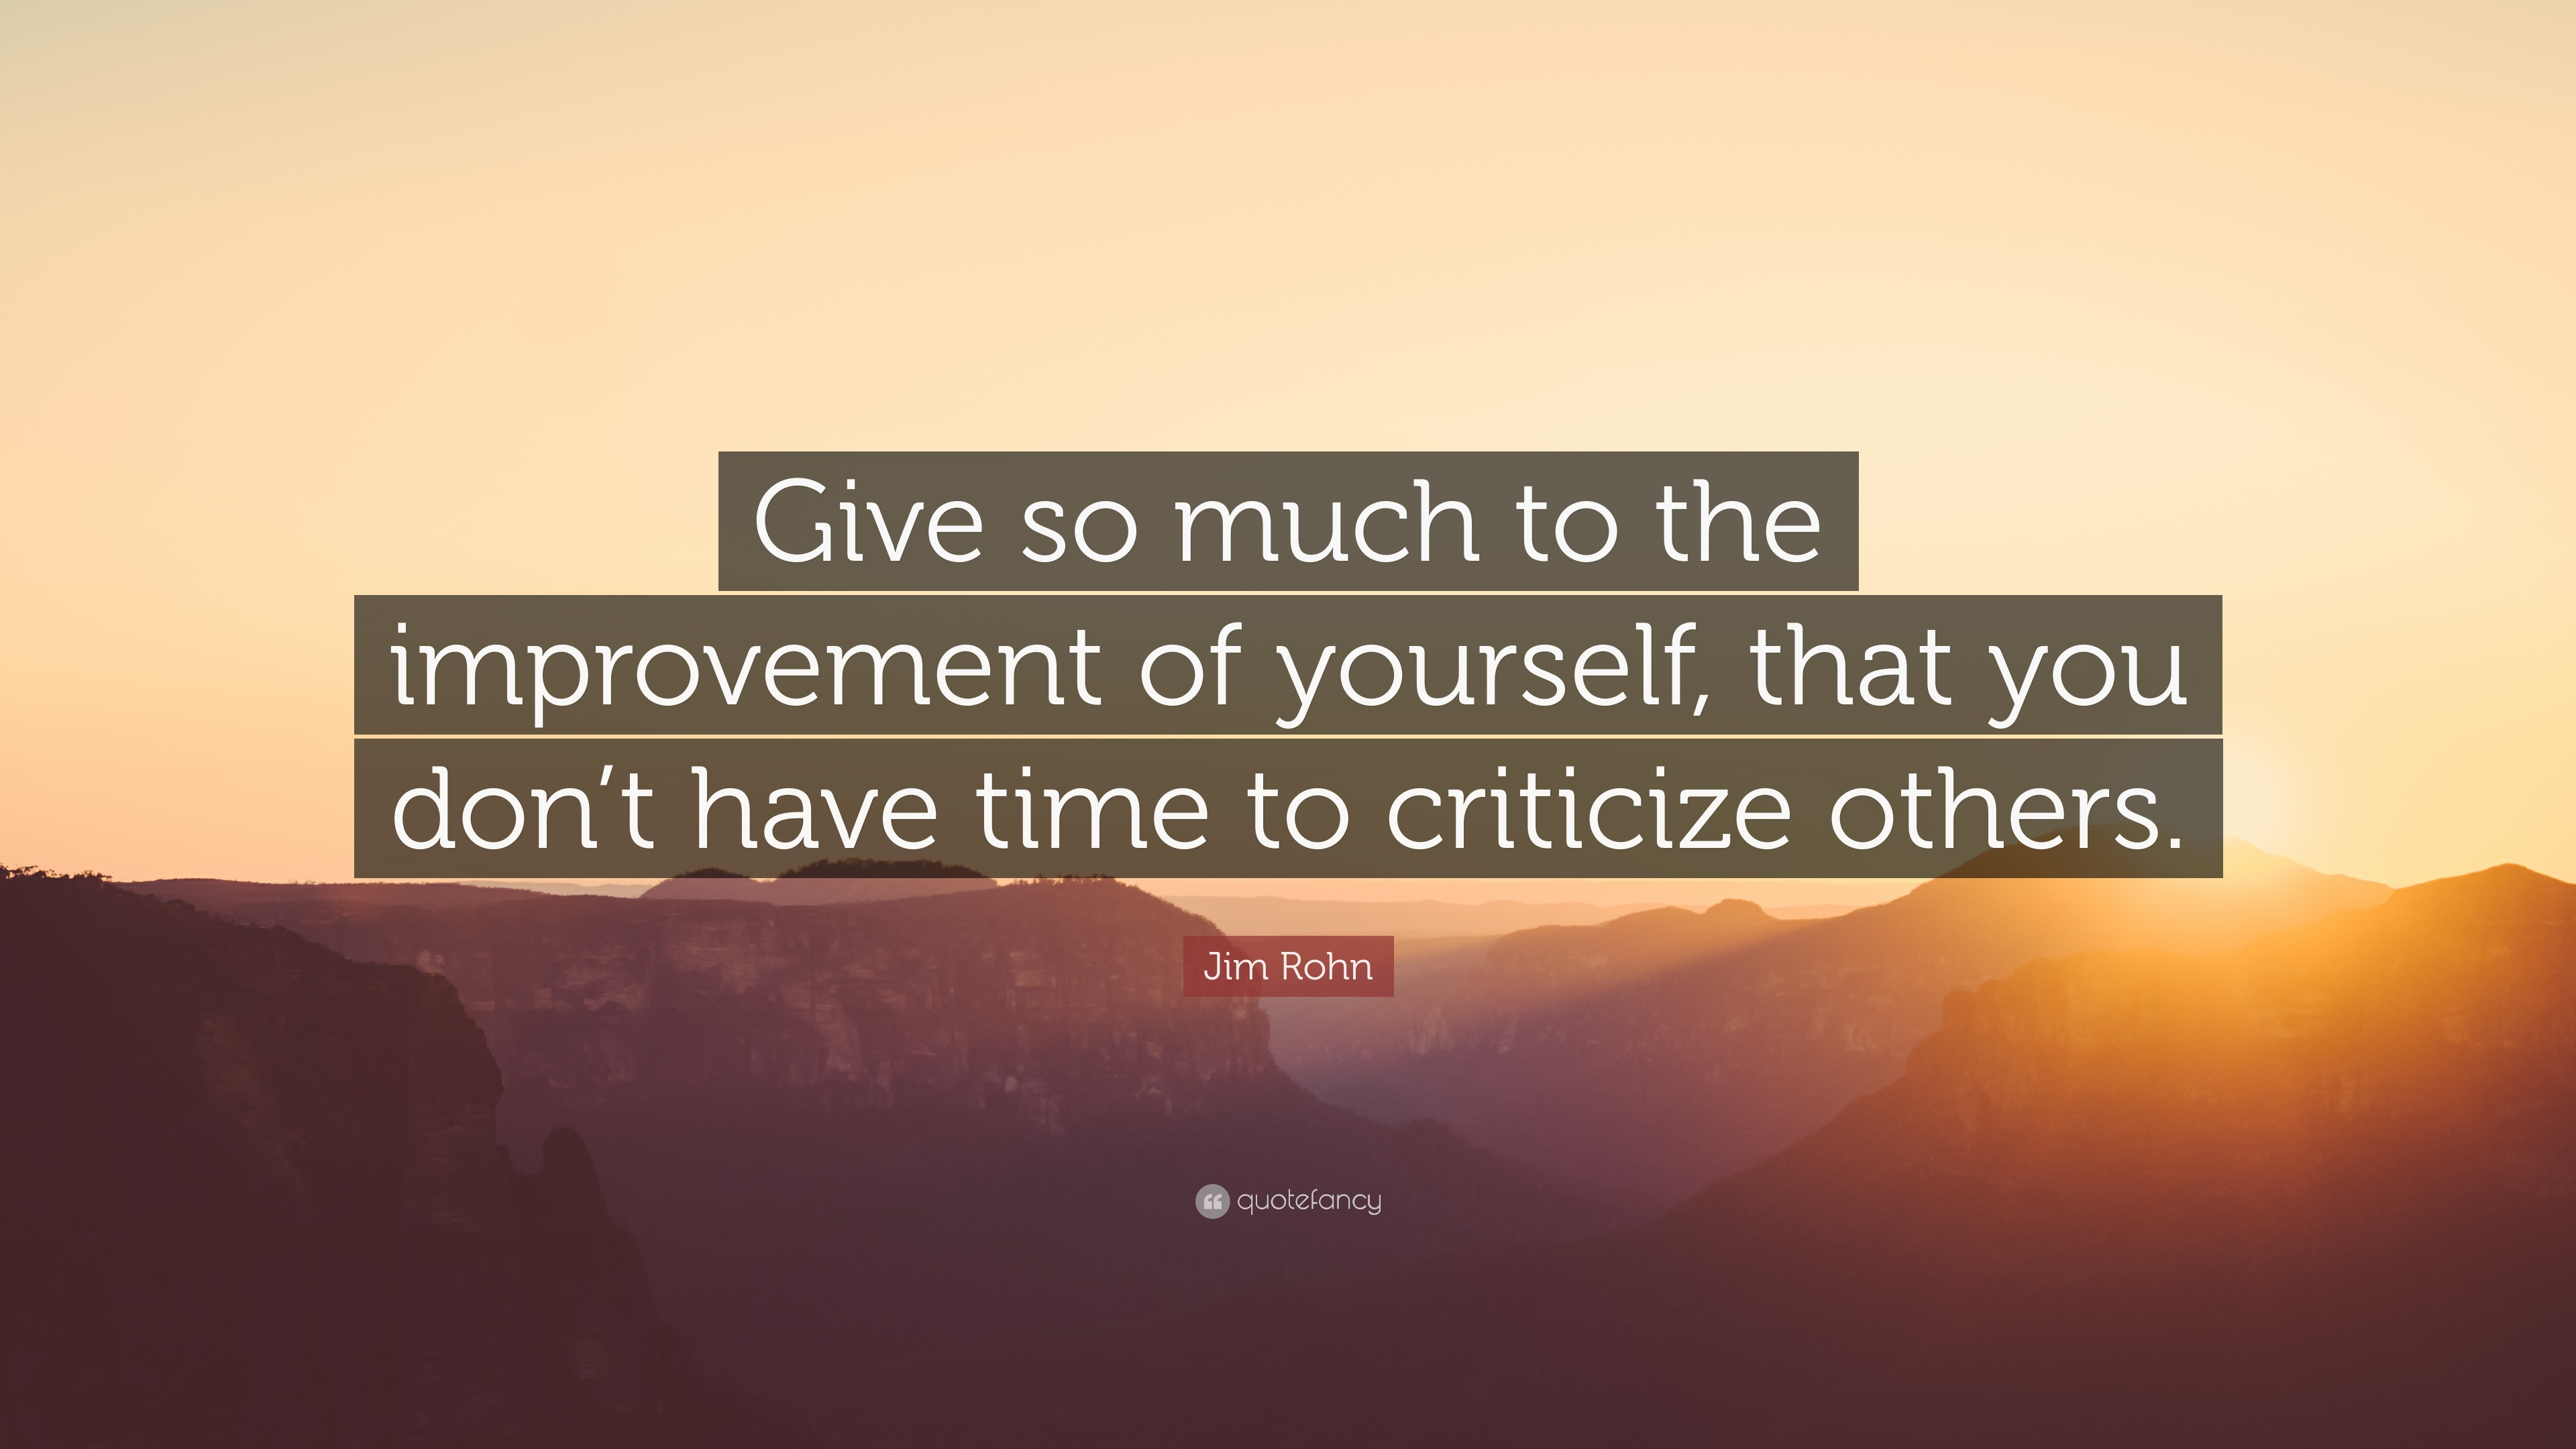 High Quality Jim Rohn Quote: U201cGive So Much To The Improvement Of Yourself, That You